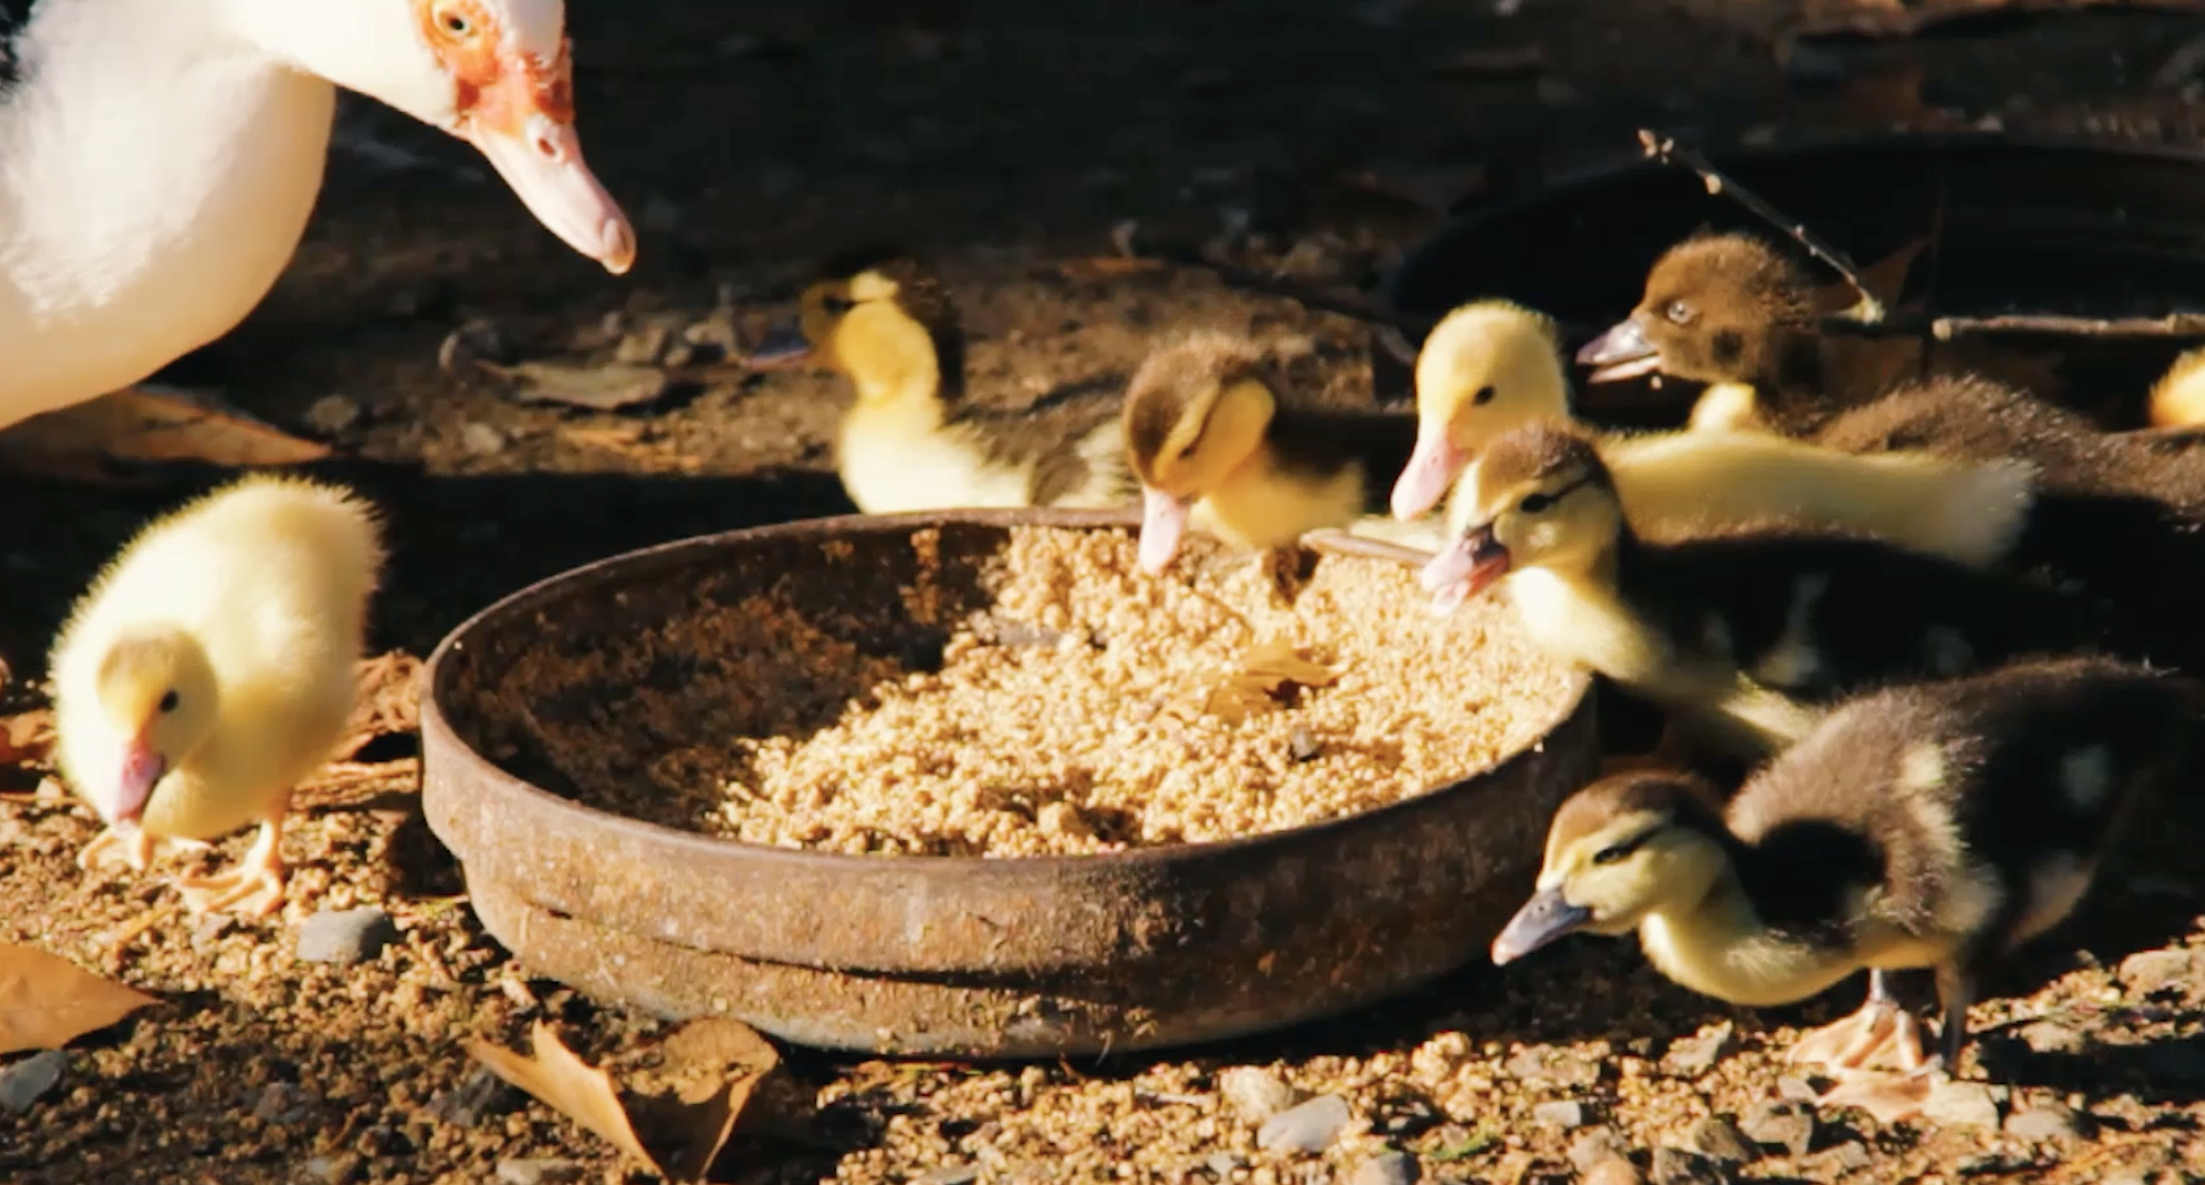 The permaculture farm is also an animal sanctuary Photo Credit: Natural Vegan